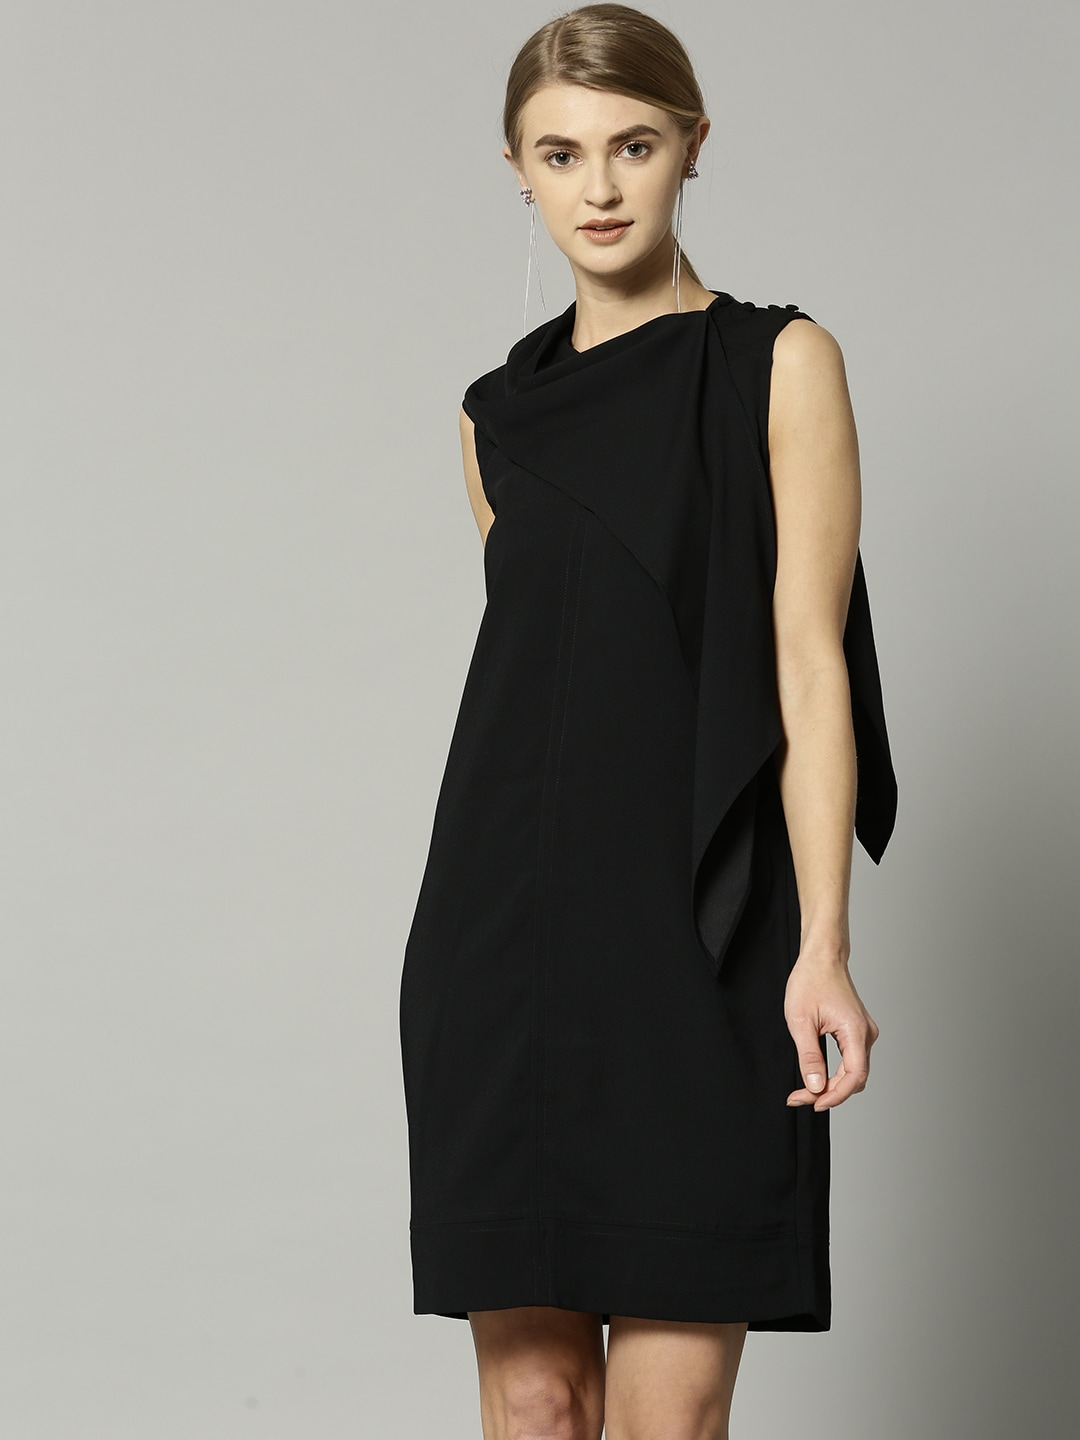 1759201e69b Black Dress - Buy Black Dresses For Women in India